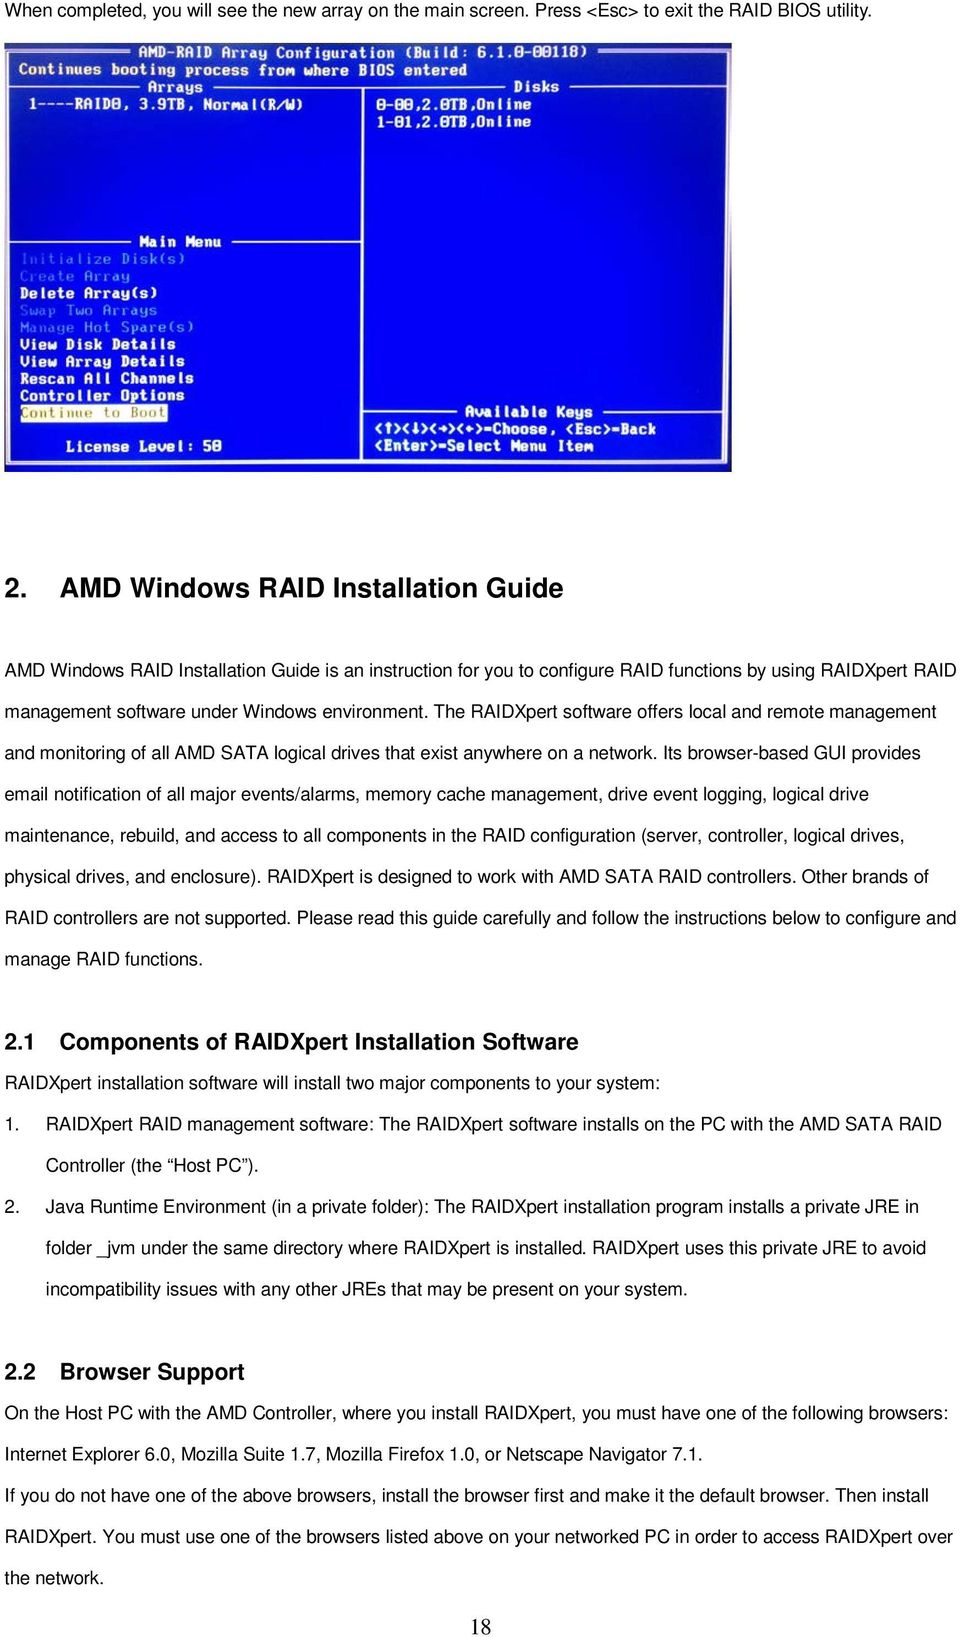 AMD RAID Installation Guide - PDF